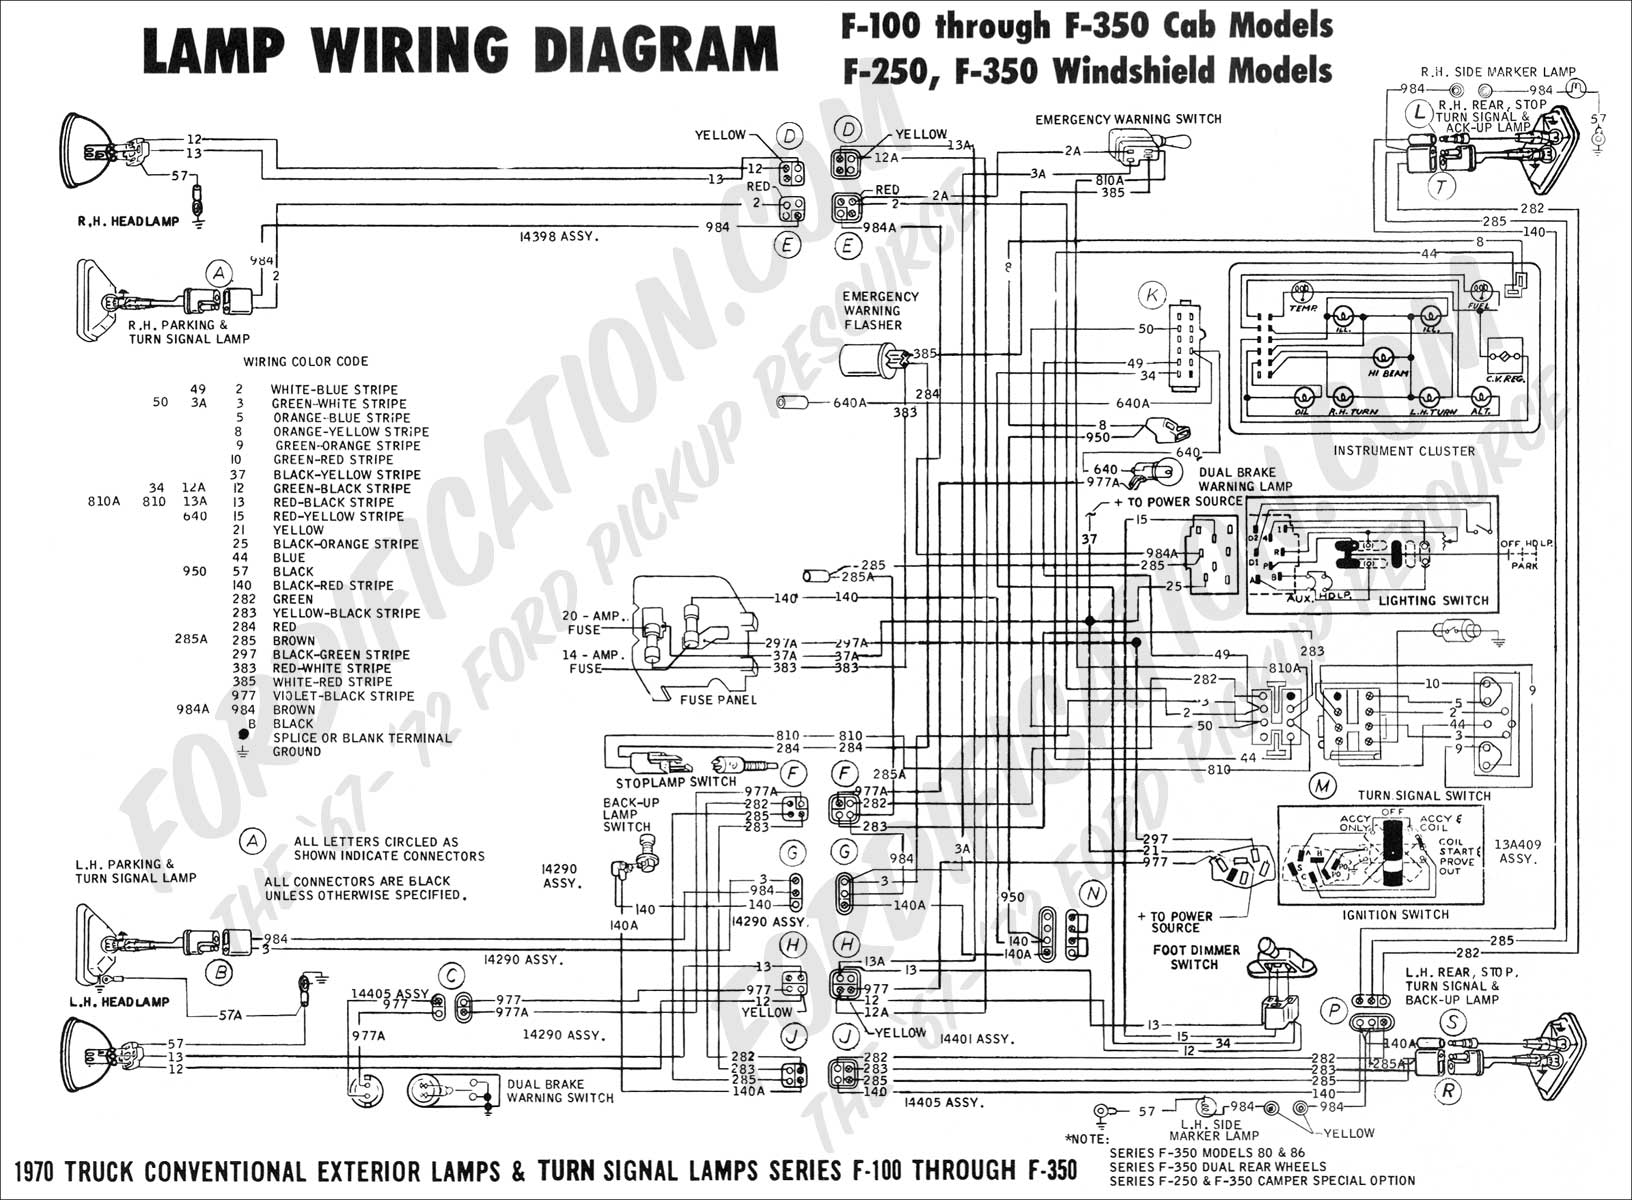 2008 f250 wiring diagram 2008 wiring diagrams online f250 wiring diagram f250 wiring diagrams